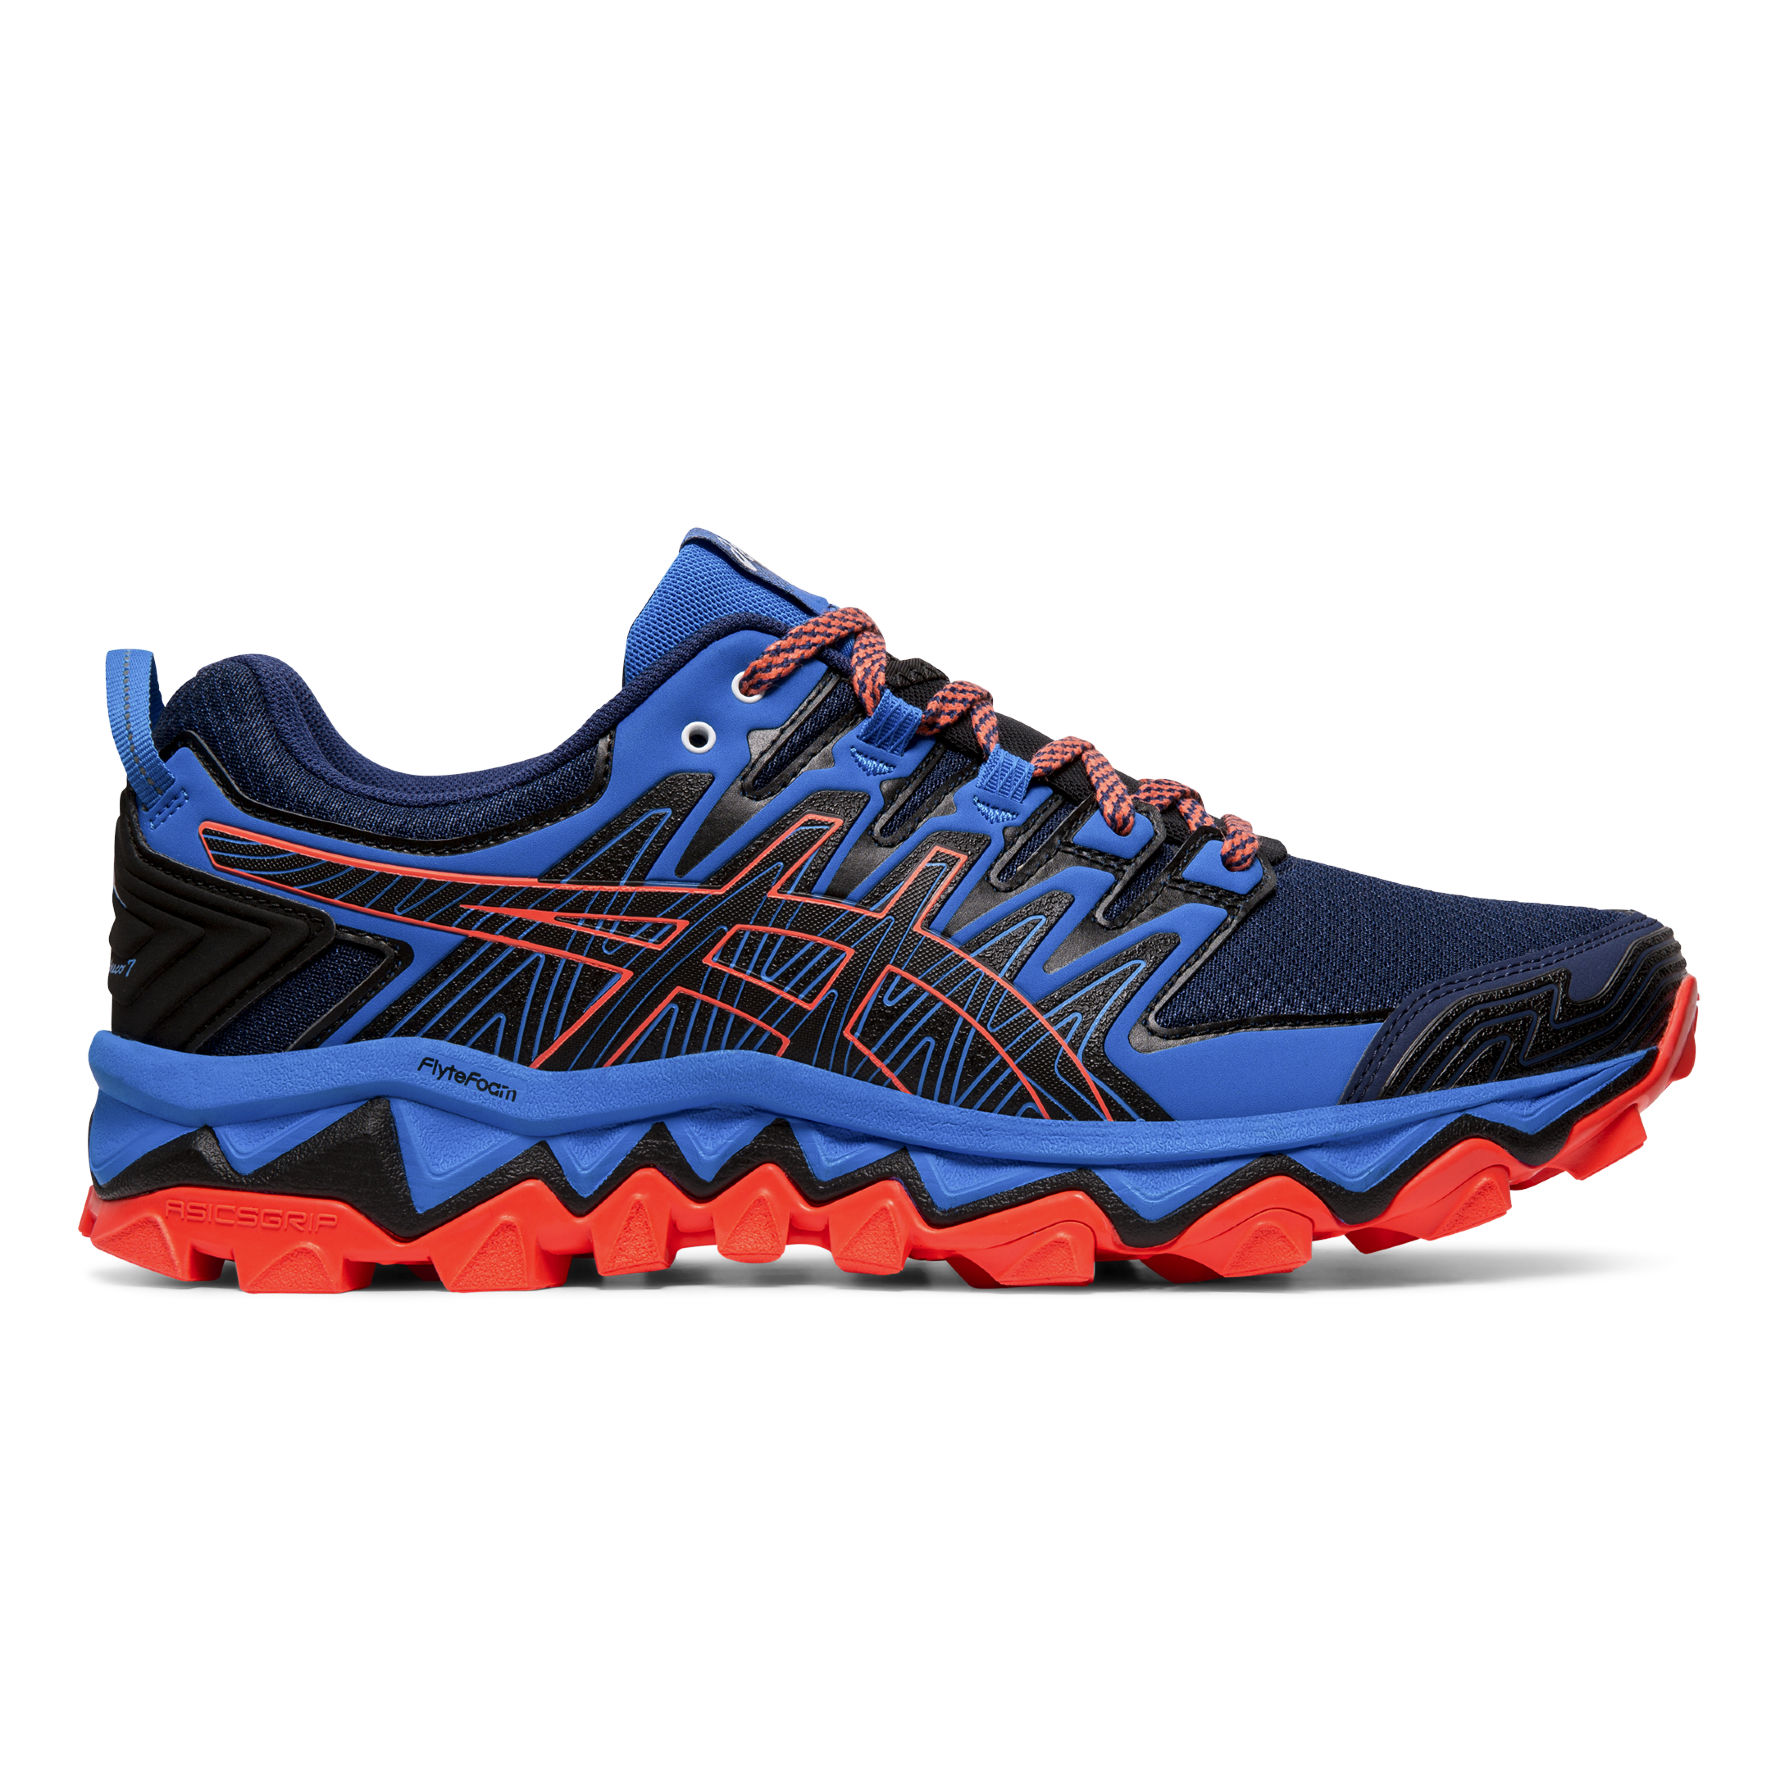 Asics Gel-Fujitrabuco 7 (Blau Orange)